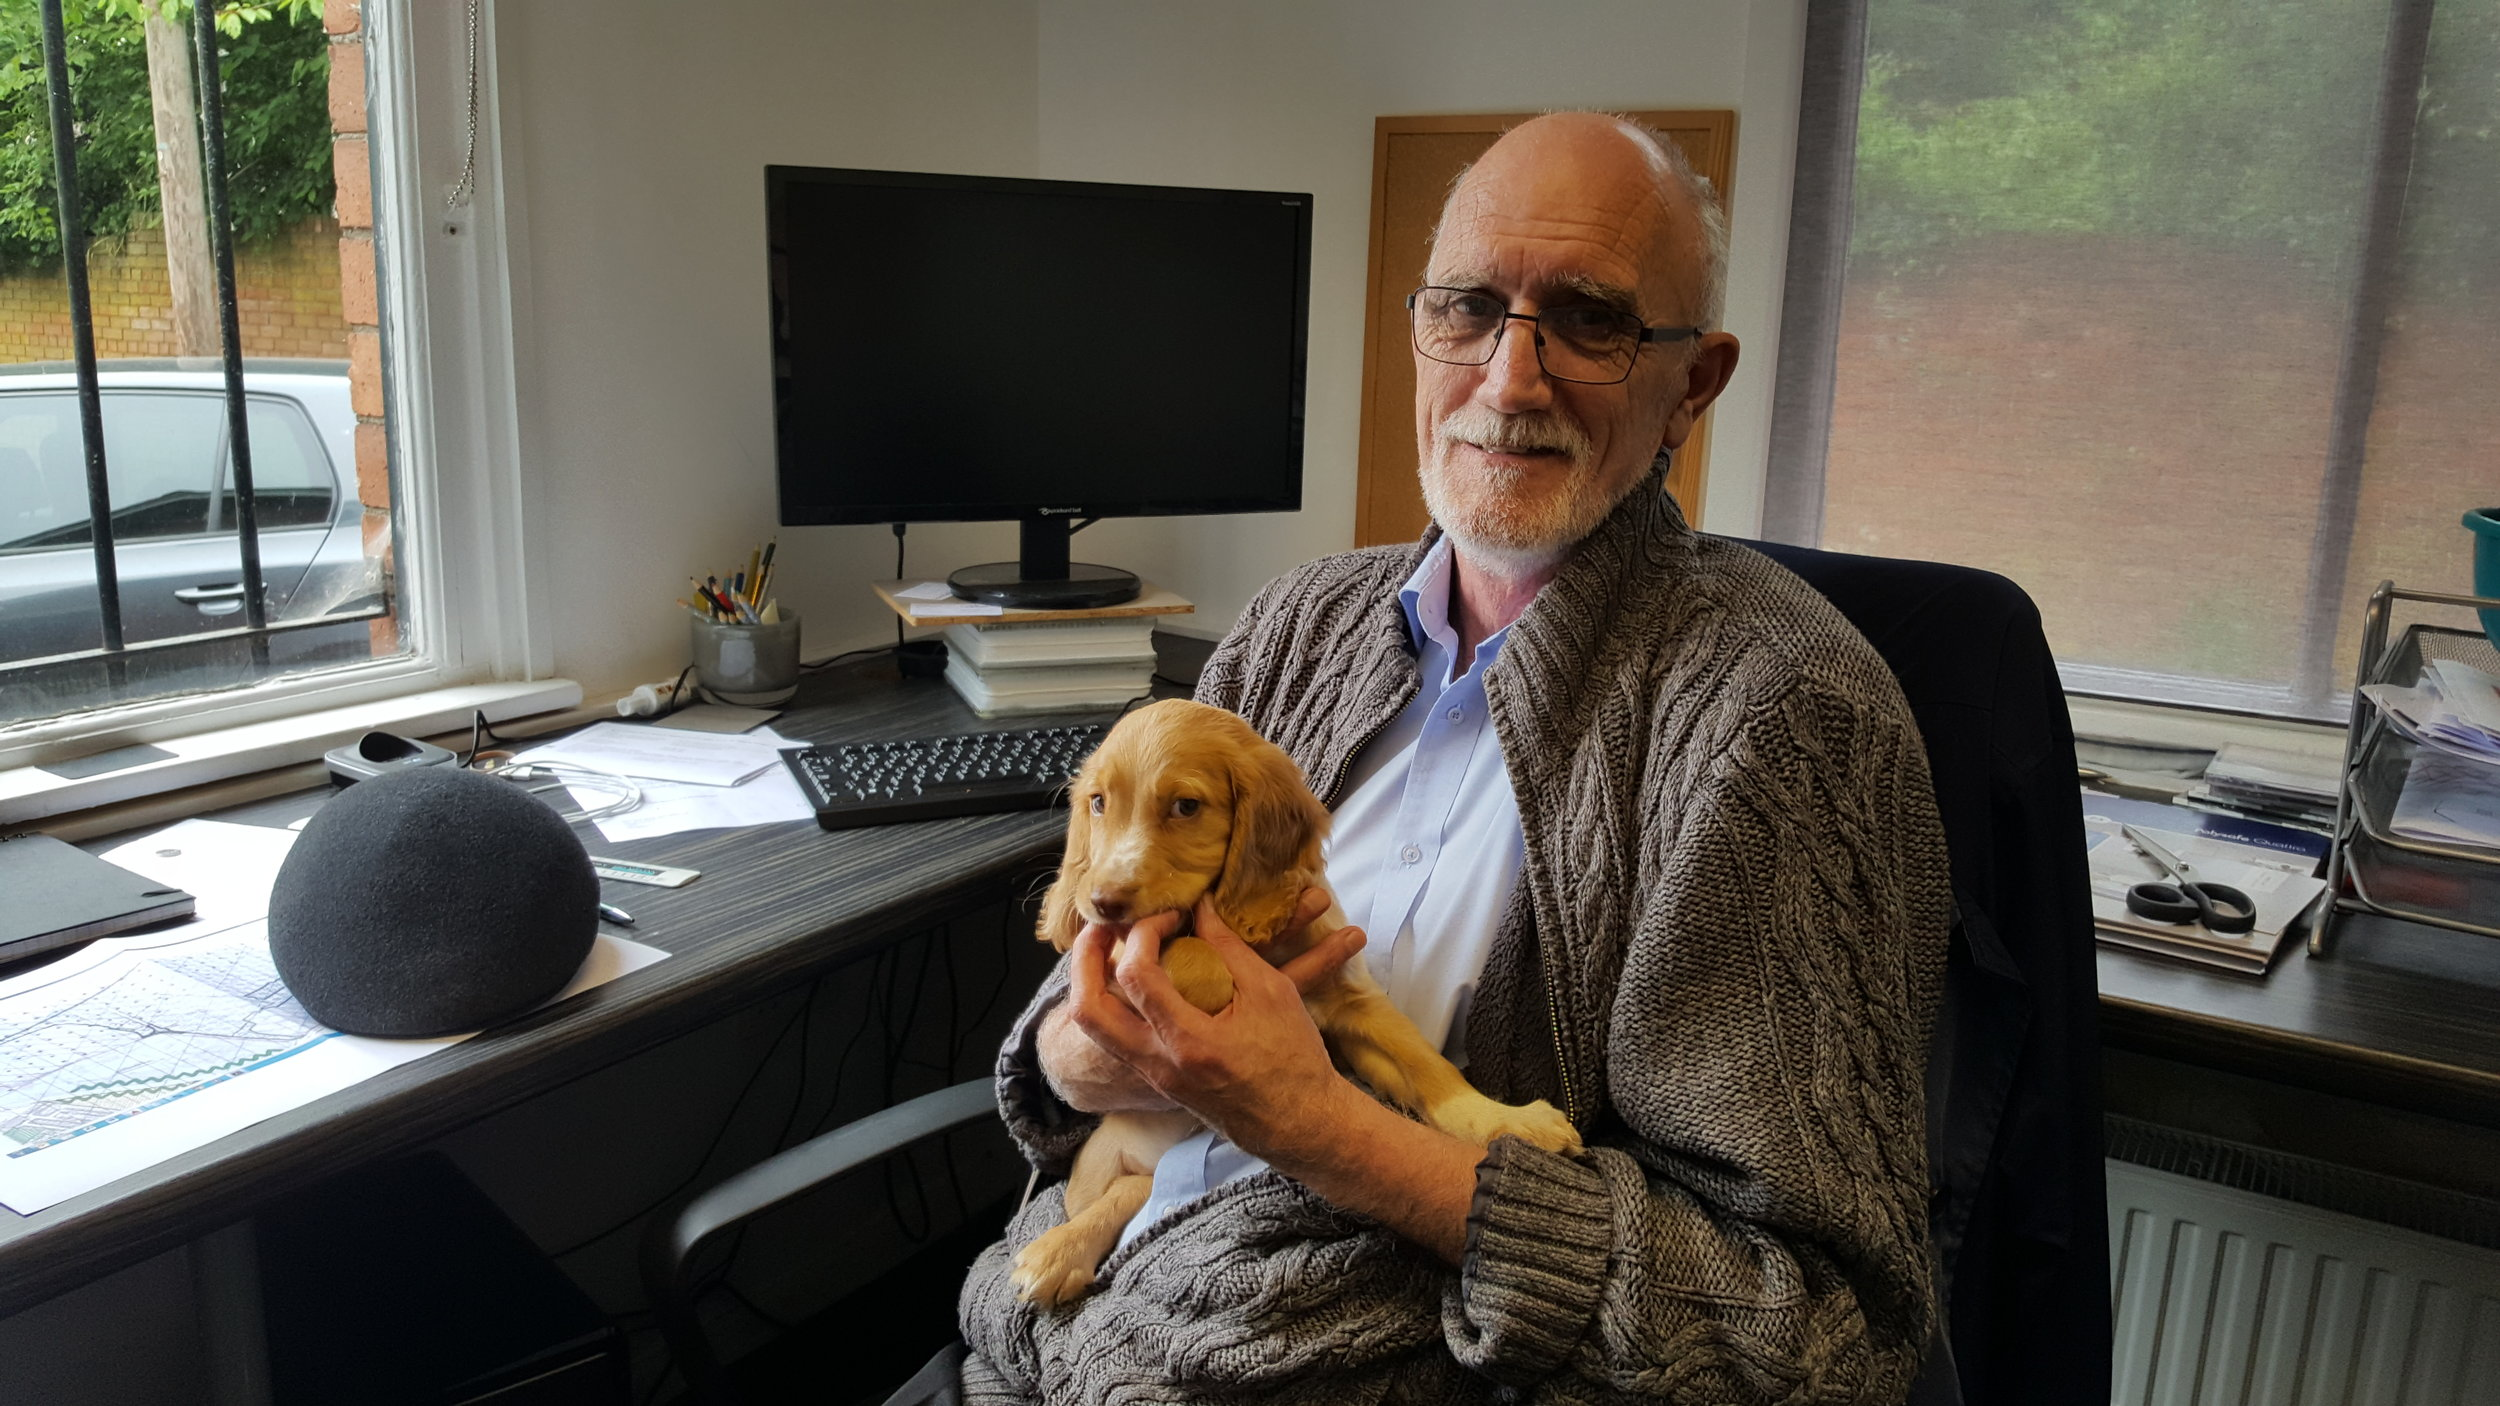 Dave Stidwell, Senior Architectural Technician, C.A.Ross Design - with office dog, Monty!